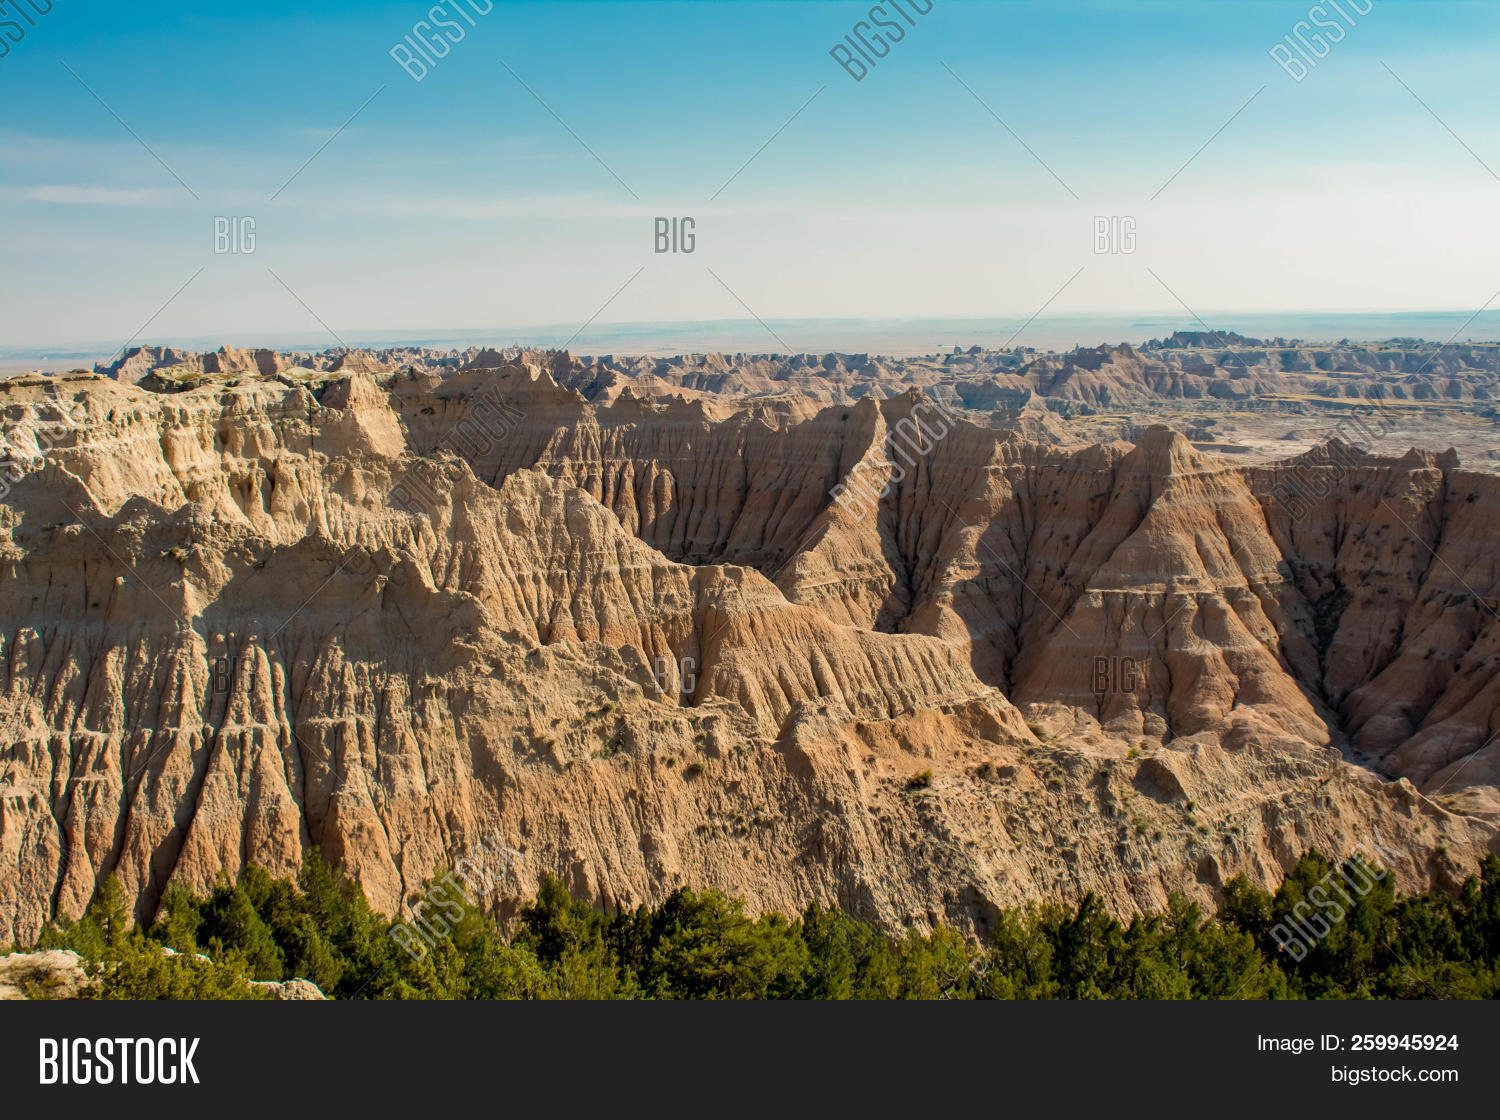 badlands,blue,bluff,boulder,butte,canyon,cliff,cloud,cloudscape,cloudy,colorful,country,countryside,dawn,dune,erosion,formation,geologic,geological,geology,grassland,hill,hillside,landscape,midwest,morning,national,natural,nature,outdoor,park,pinnacle,rise,rock,rust,scenic,sedimentary,sky,spire,storm,sun,sunrise,travel